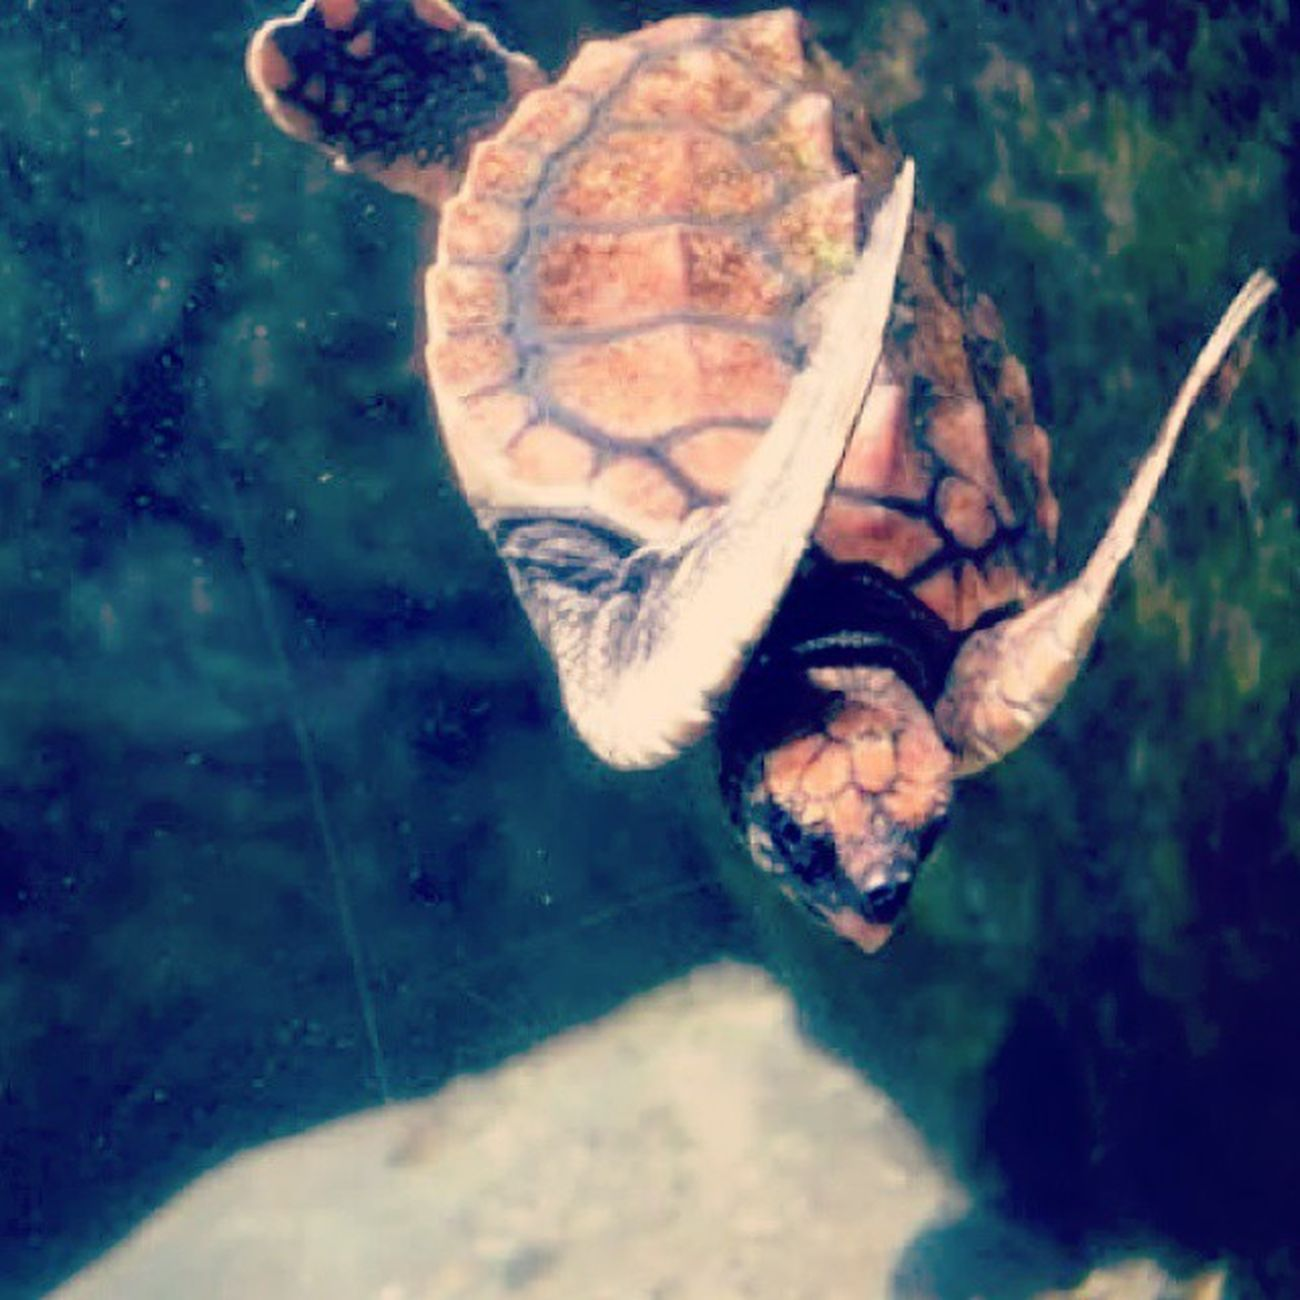 Missing Port Elizabeth. ♥ Portelizabeth Southafrica Happytimes Beach Ocean Sea Clouds Memorablemoments April 2014 Thingsilove Thingsimiss ♥♥♥ Oceanerium Turtles Seacreatures Animals Oceanlove